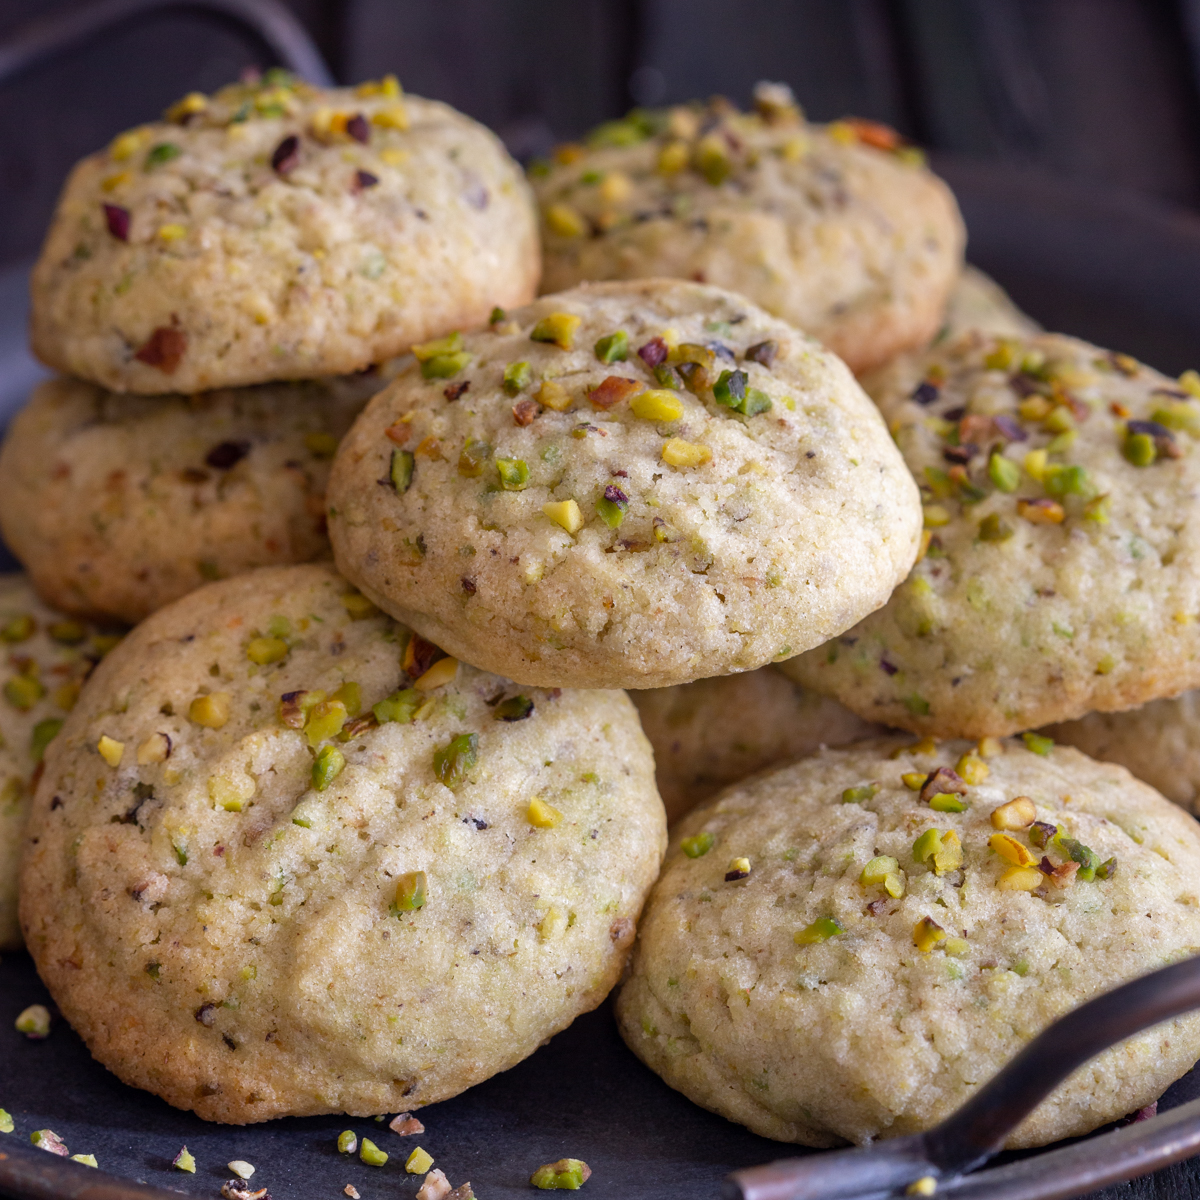 Pistachio cookies on a black tray.